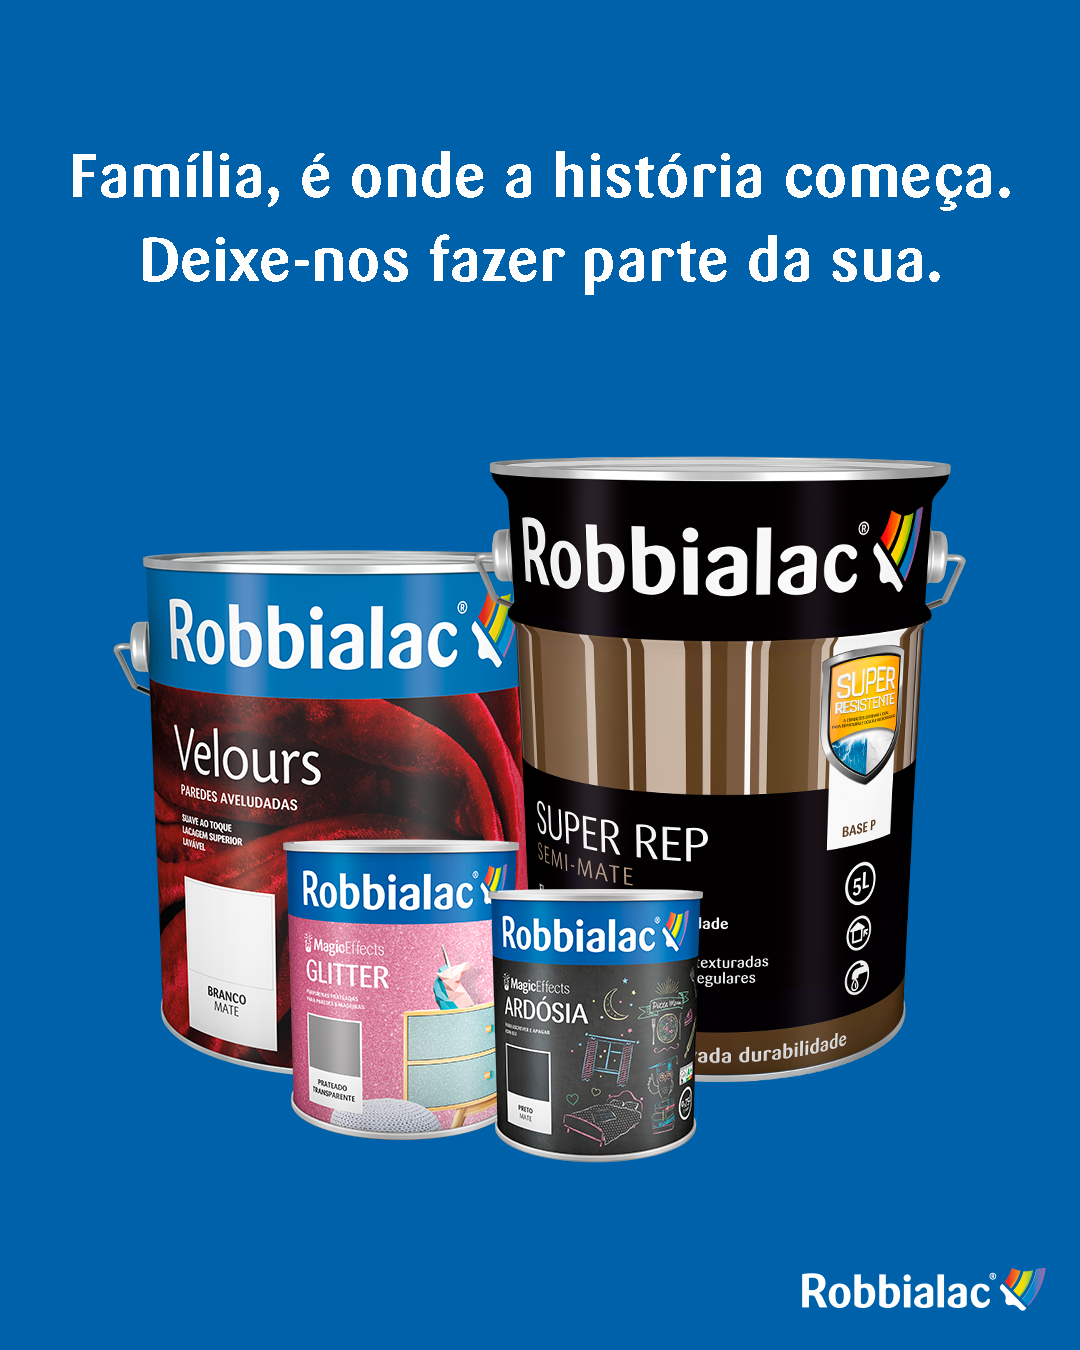 robiallac3